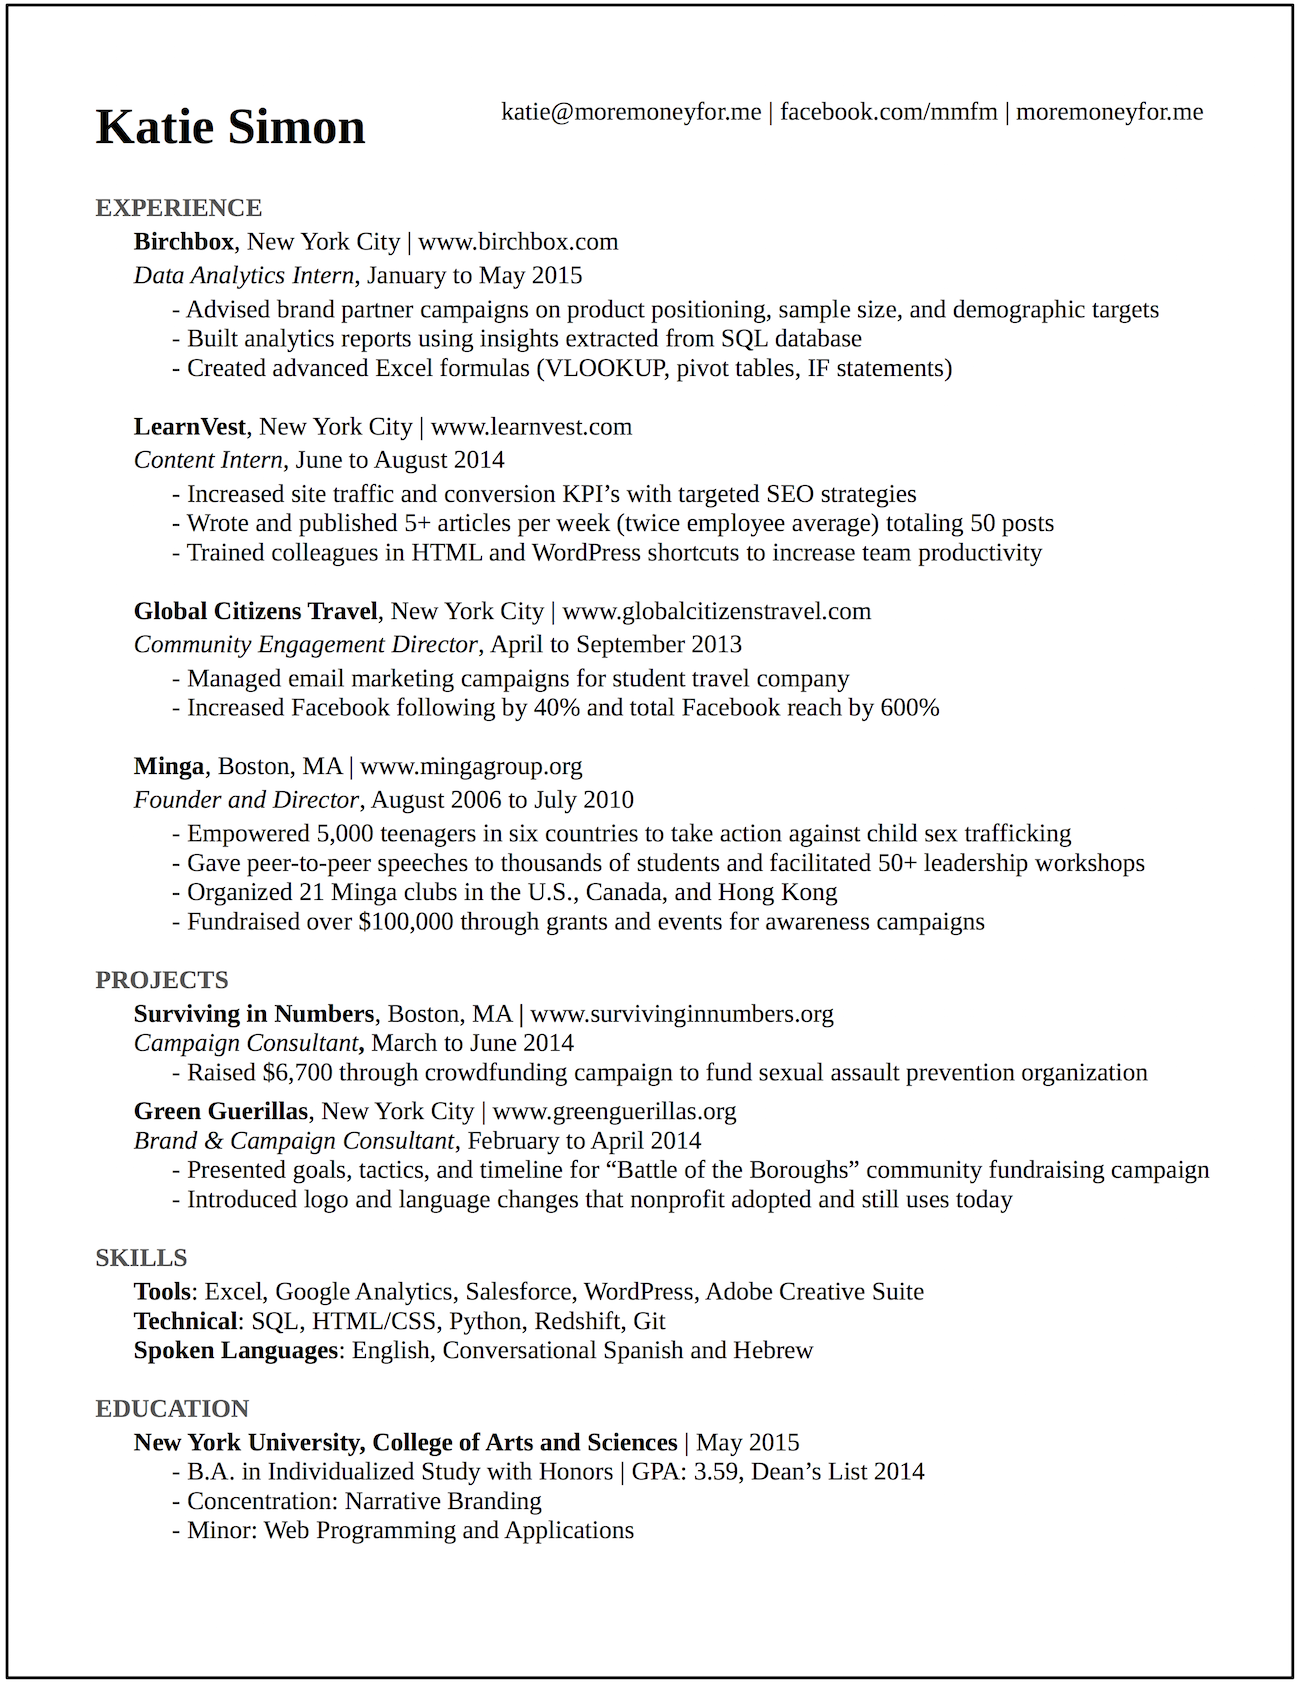 Wonderful This Résumé Landed Me Interviews At Google, BuzzFeed, And More Than 20 Top  Startups